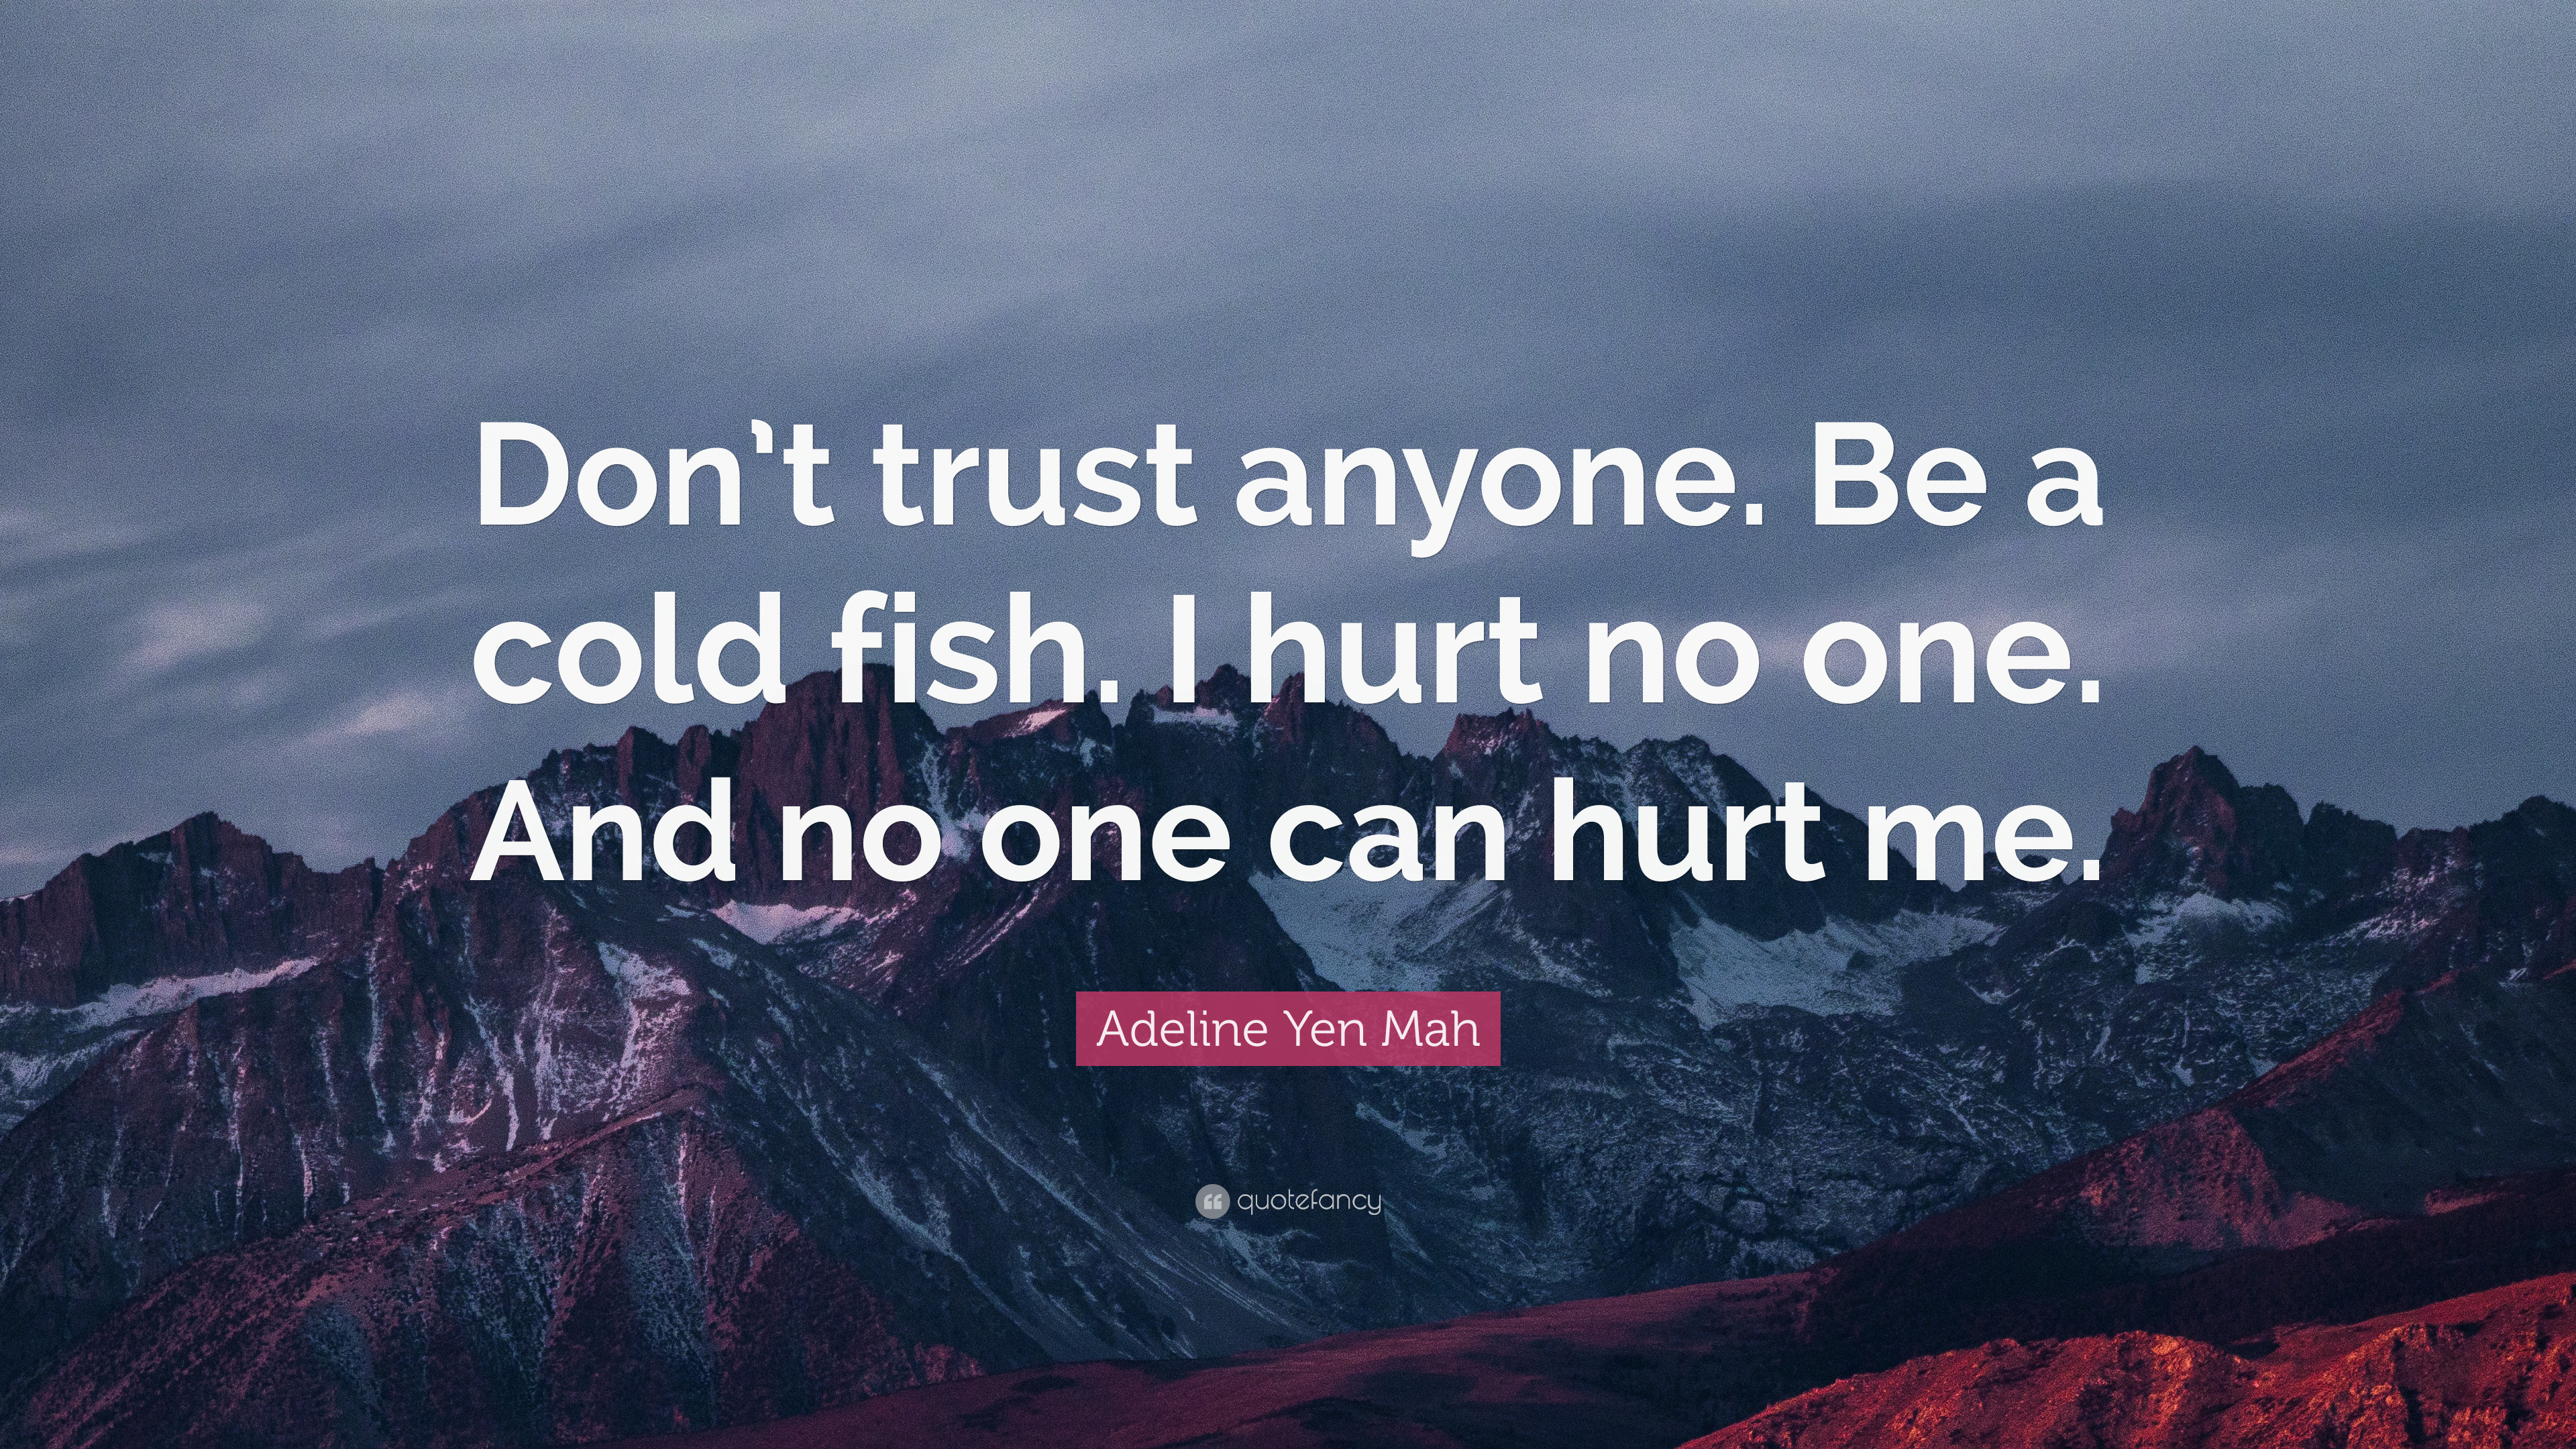 Adeline Yen Mah Quote Don T Trust Anyone Be A Cold Fish I Hurt No One And No One Can Hurt Me 7 Wallpapers Quotefancy